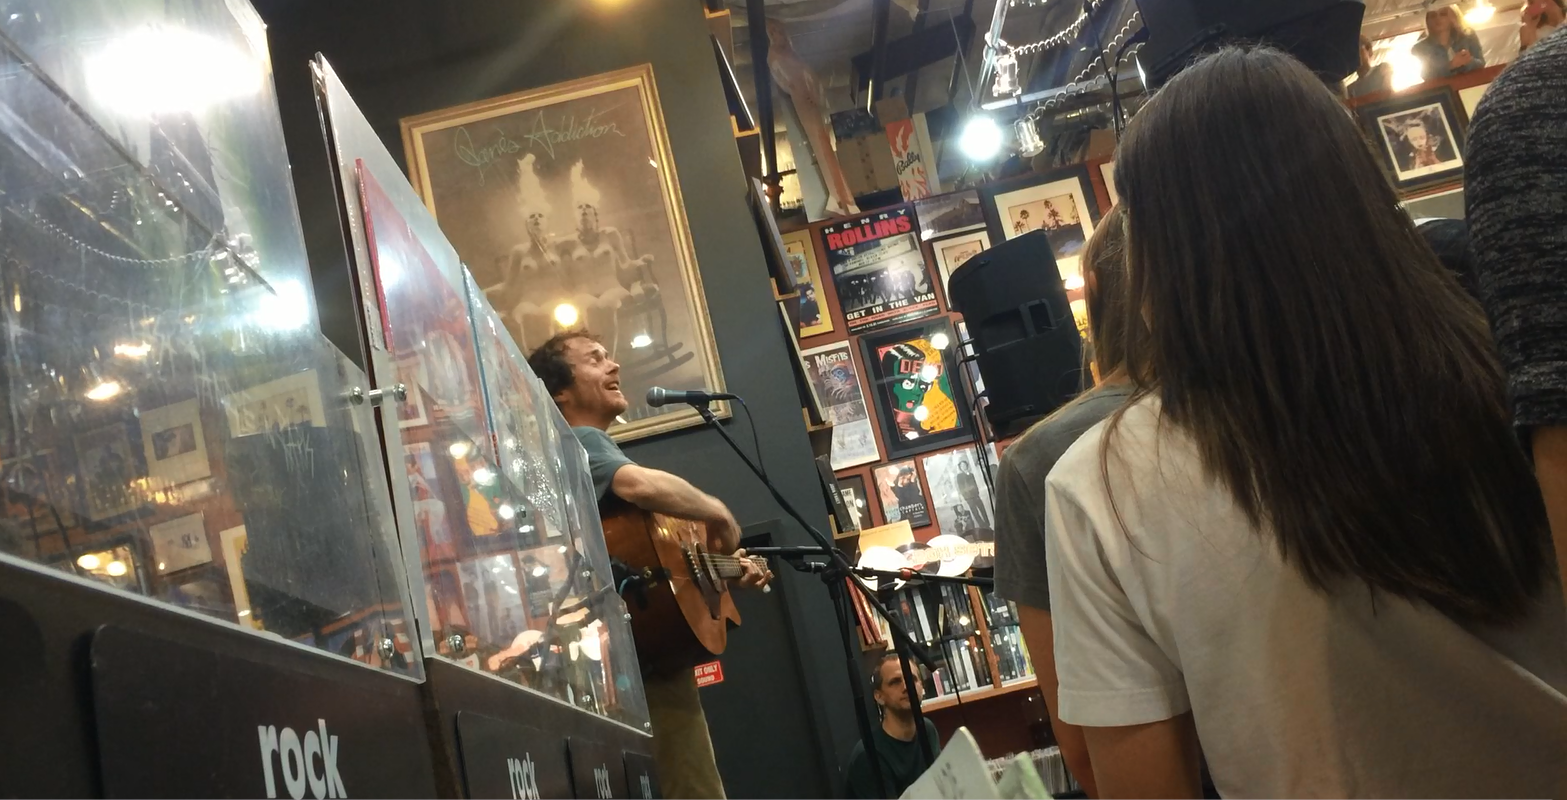 Damien Rice The Blowers Daughter Record Store Day Twist and Shout Records Denver 4-18-2015